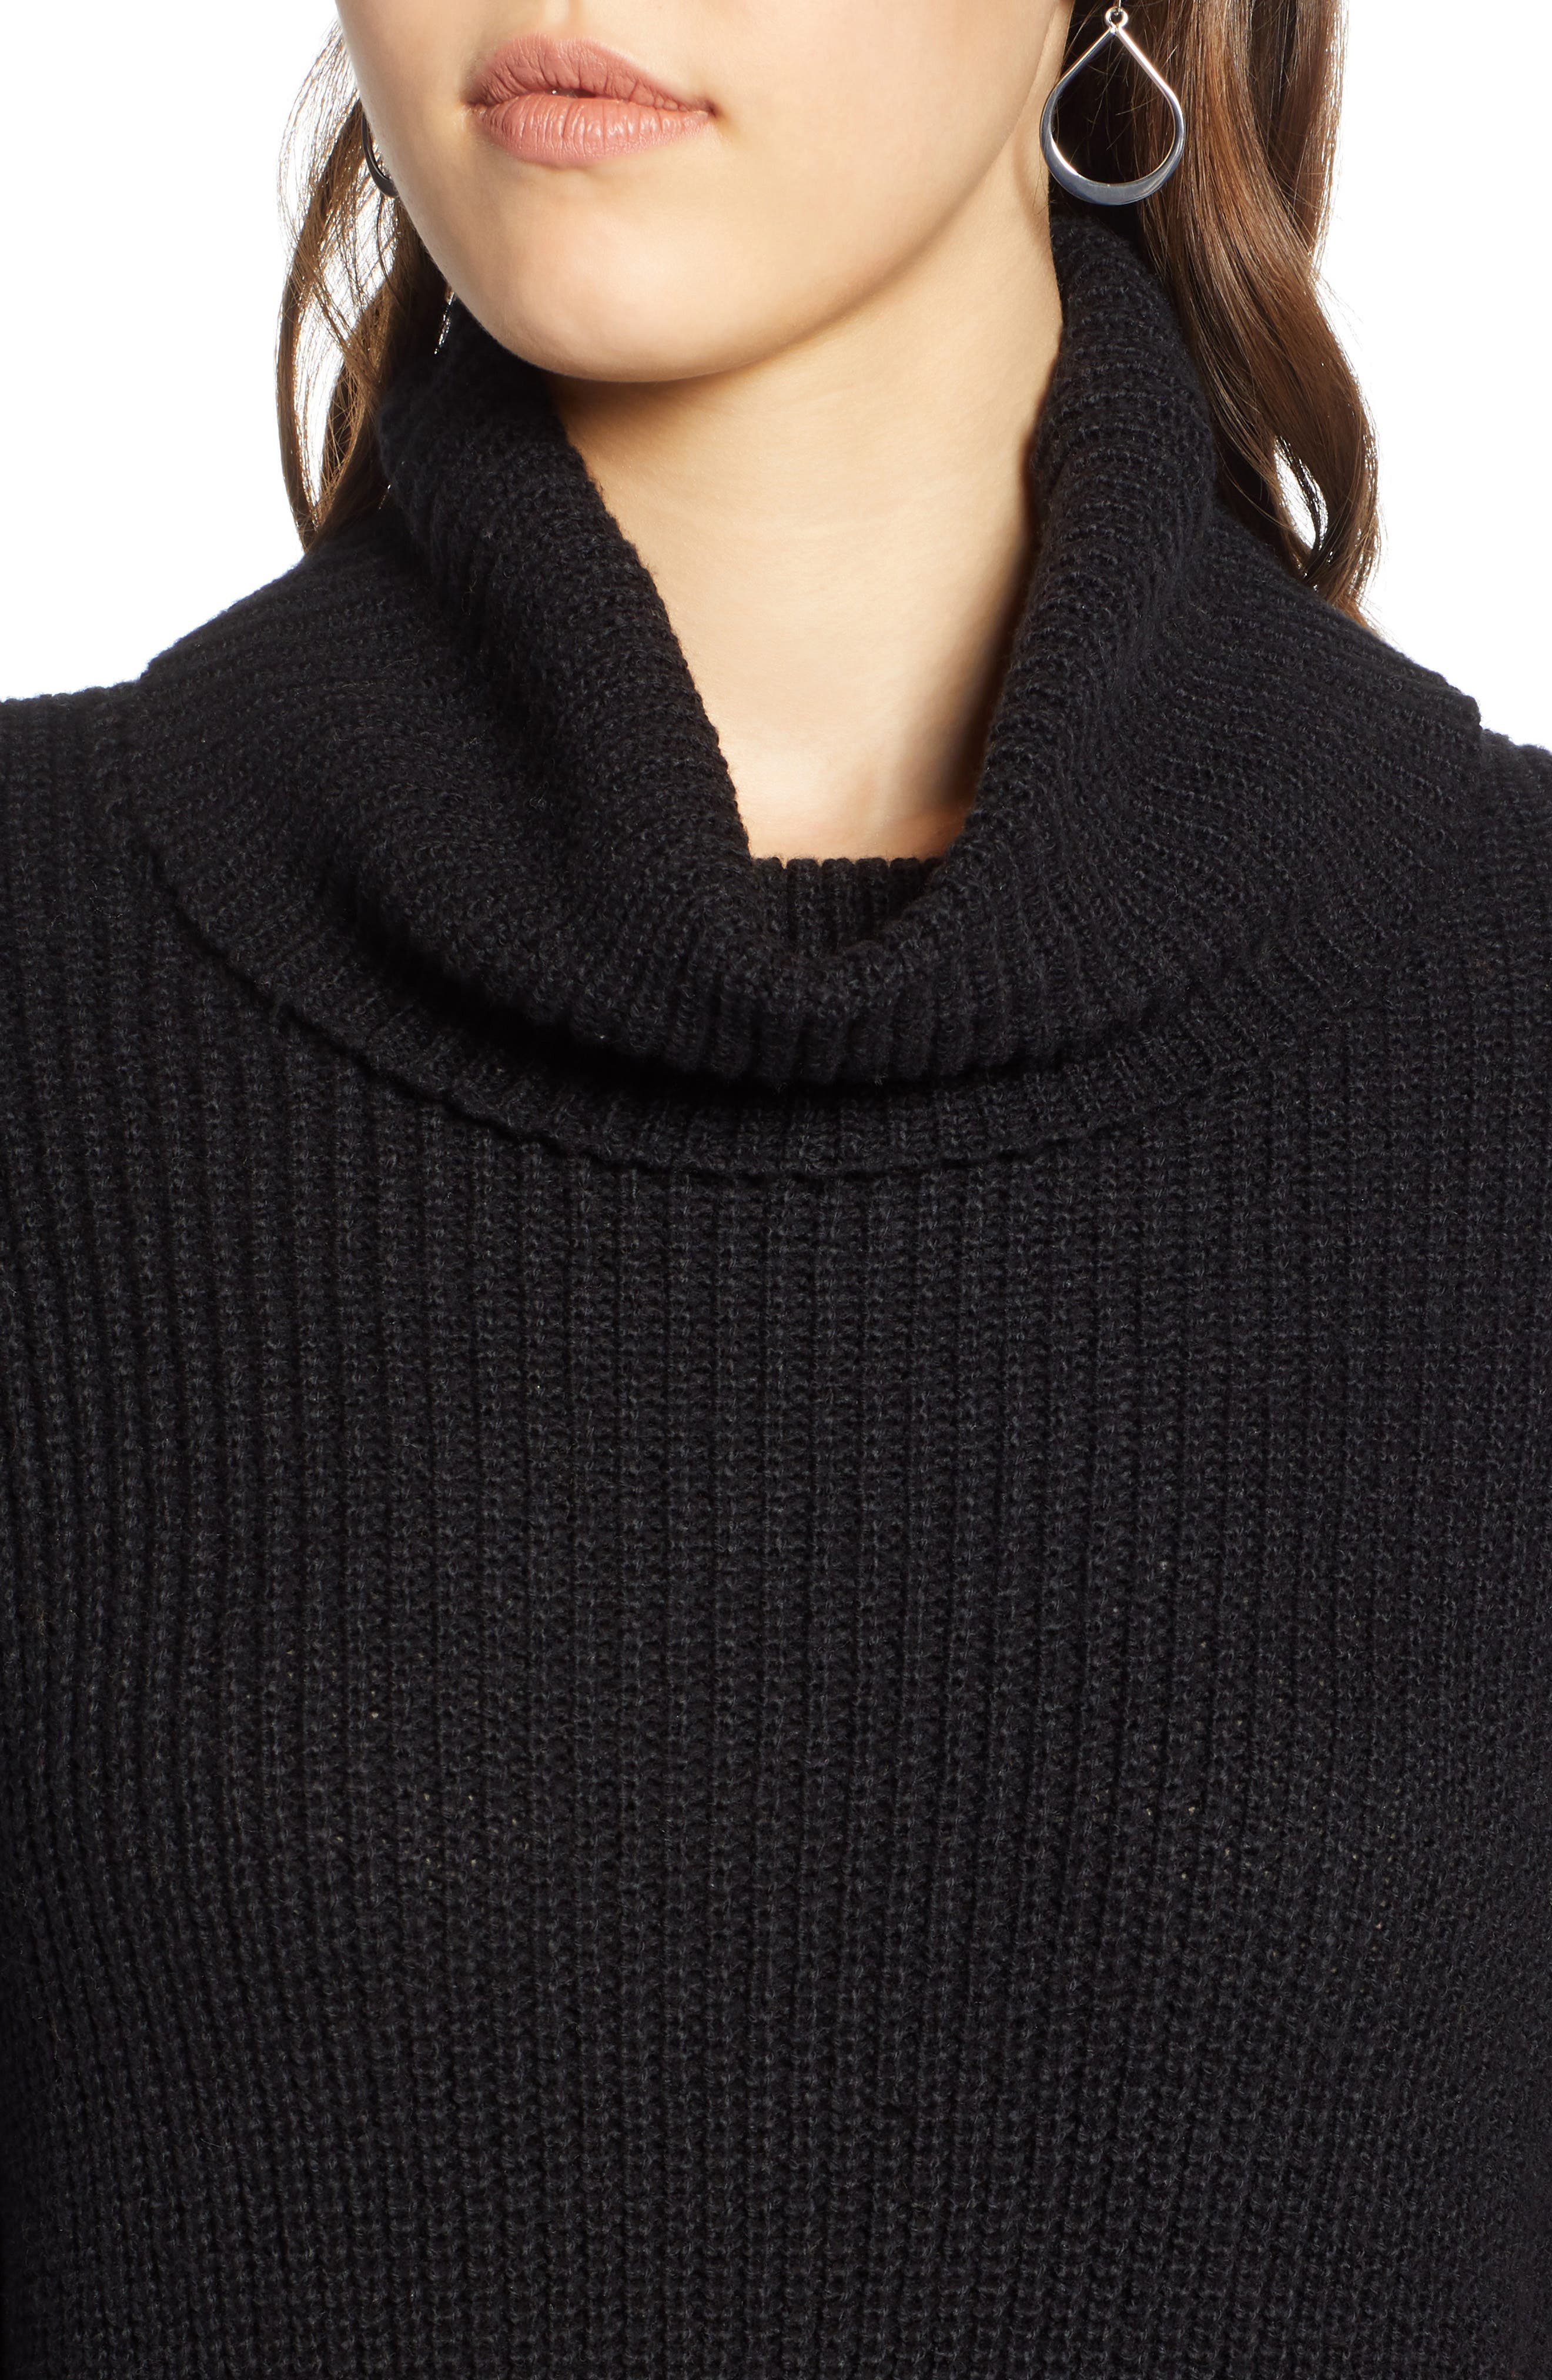 Oversized Turtleneck Tunic Sweater,                             Alternate thumbnail 4, color,                             001